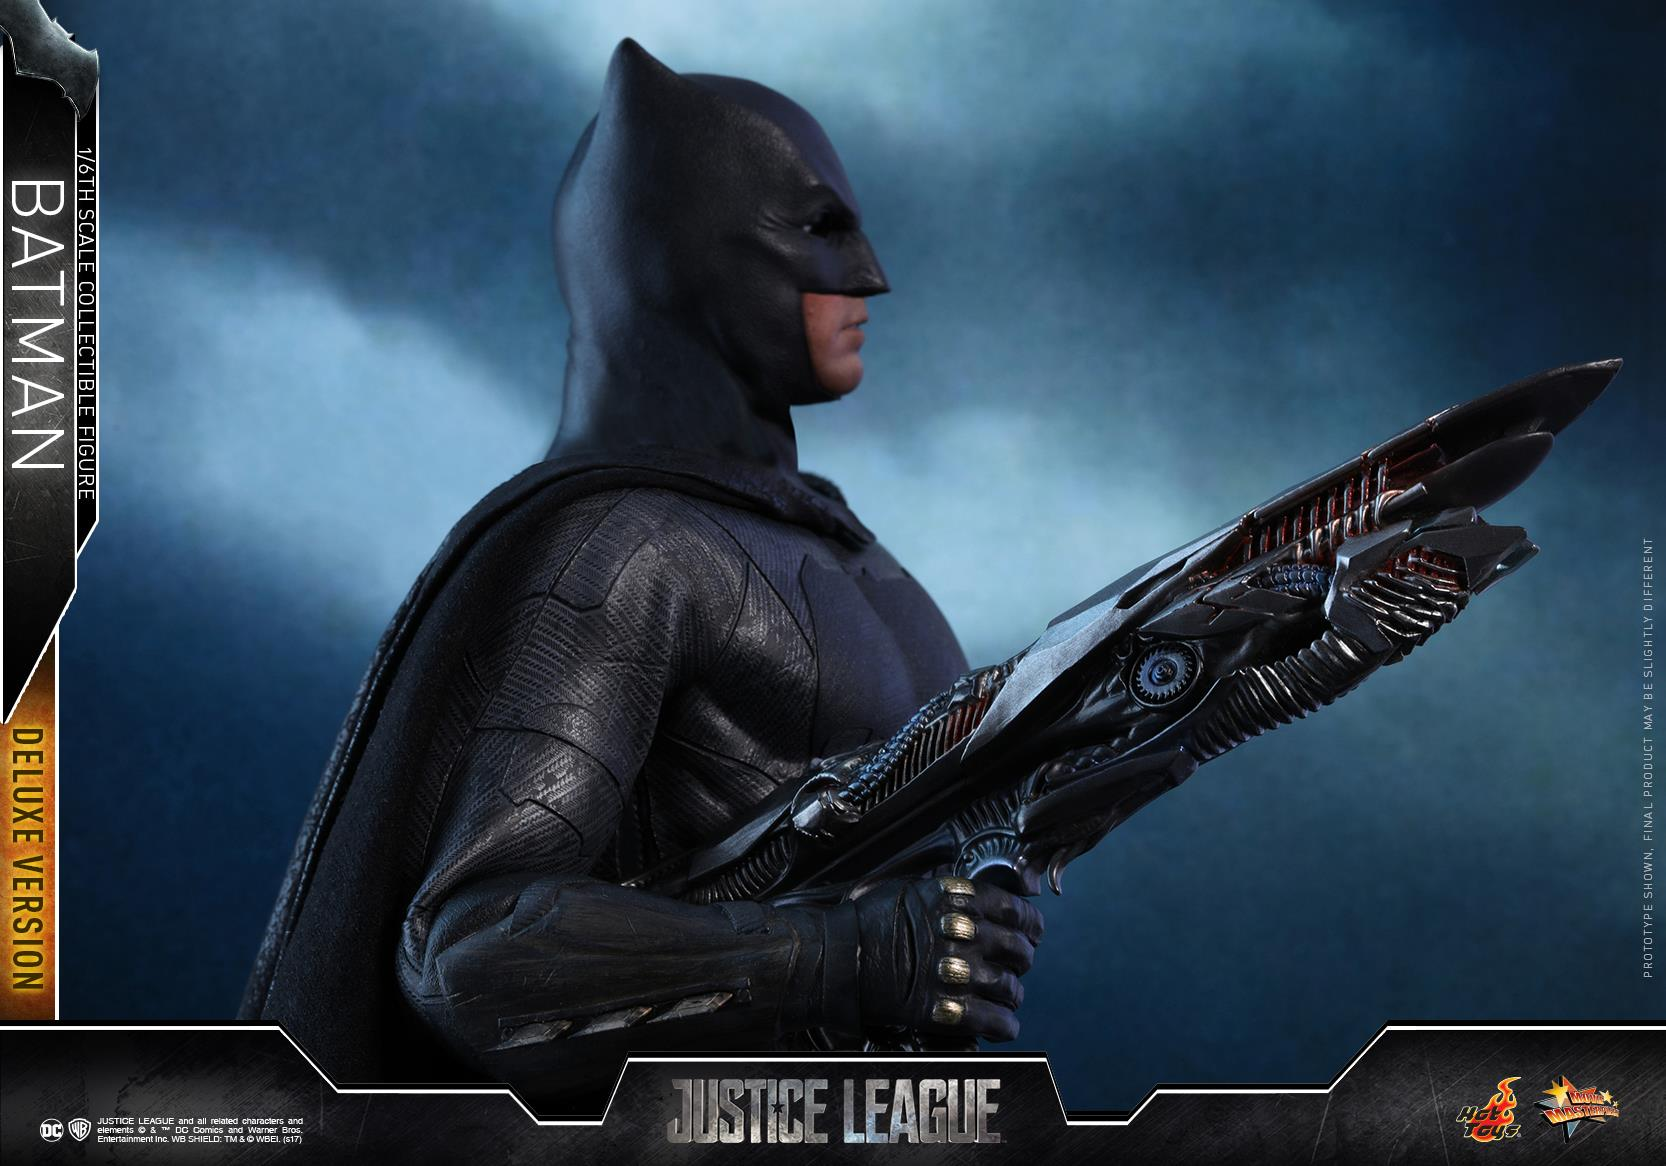 Hot Toys Justice Leagu...